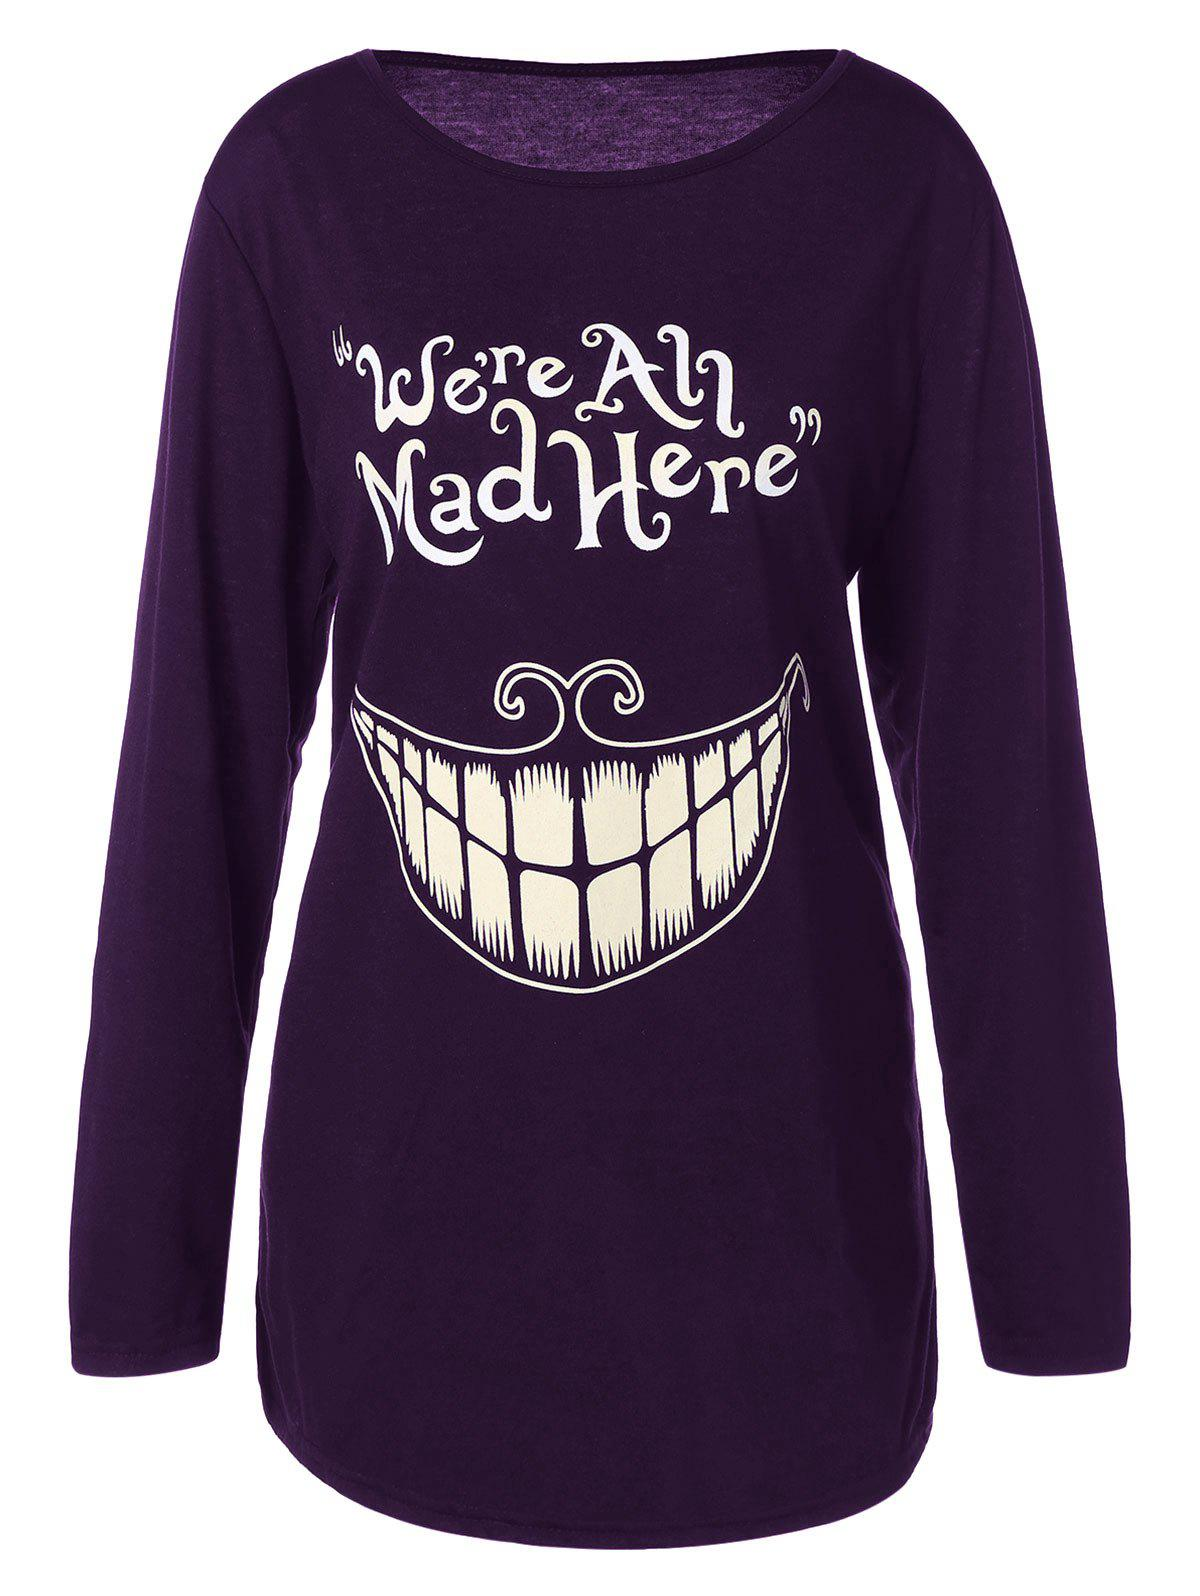 Plus Size Teeth and Letter Print T-shirtWOMEN<br><br>Size: XL; Color: PURPLE; Material: Polyester,Spandex; Shirt Length: Long; Sleeve Length: Full; Collar: Jewel Neck; Style: Casual; Season: Fall,Spring; Pattern Type: Letter; Weight: 0.2510kg; Package Contents: 1 x T-Shirt;